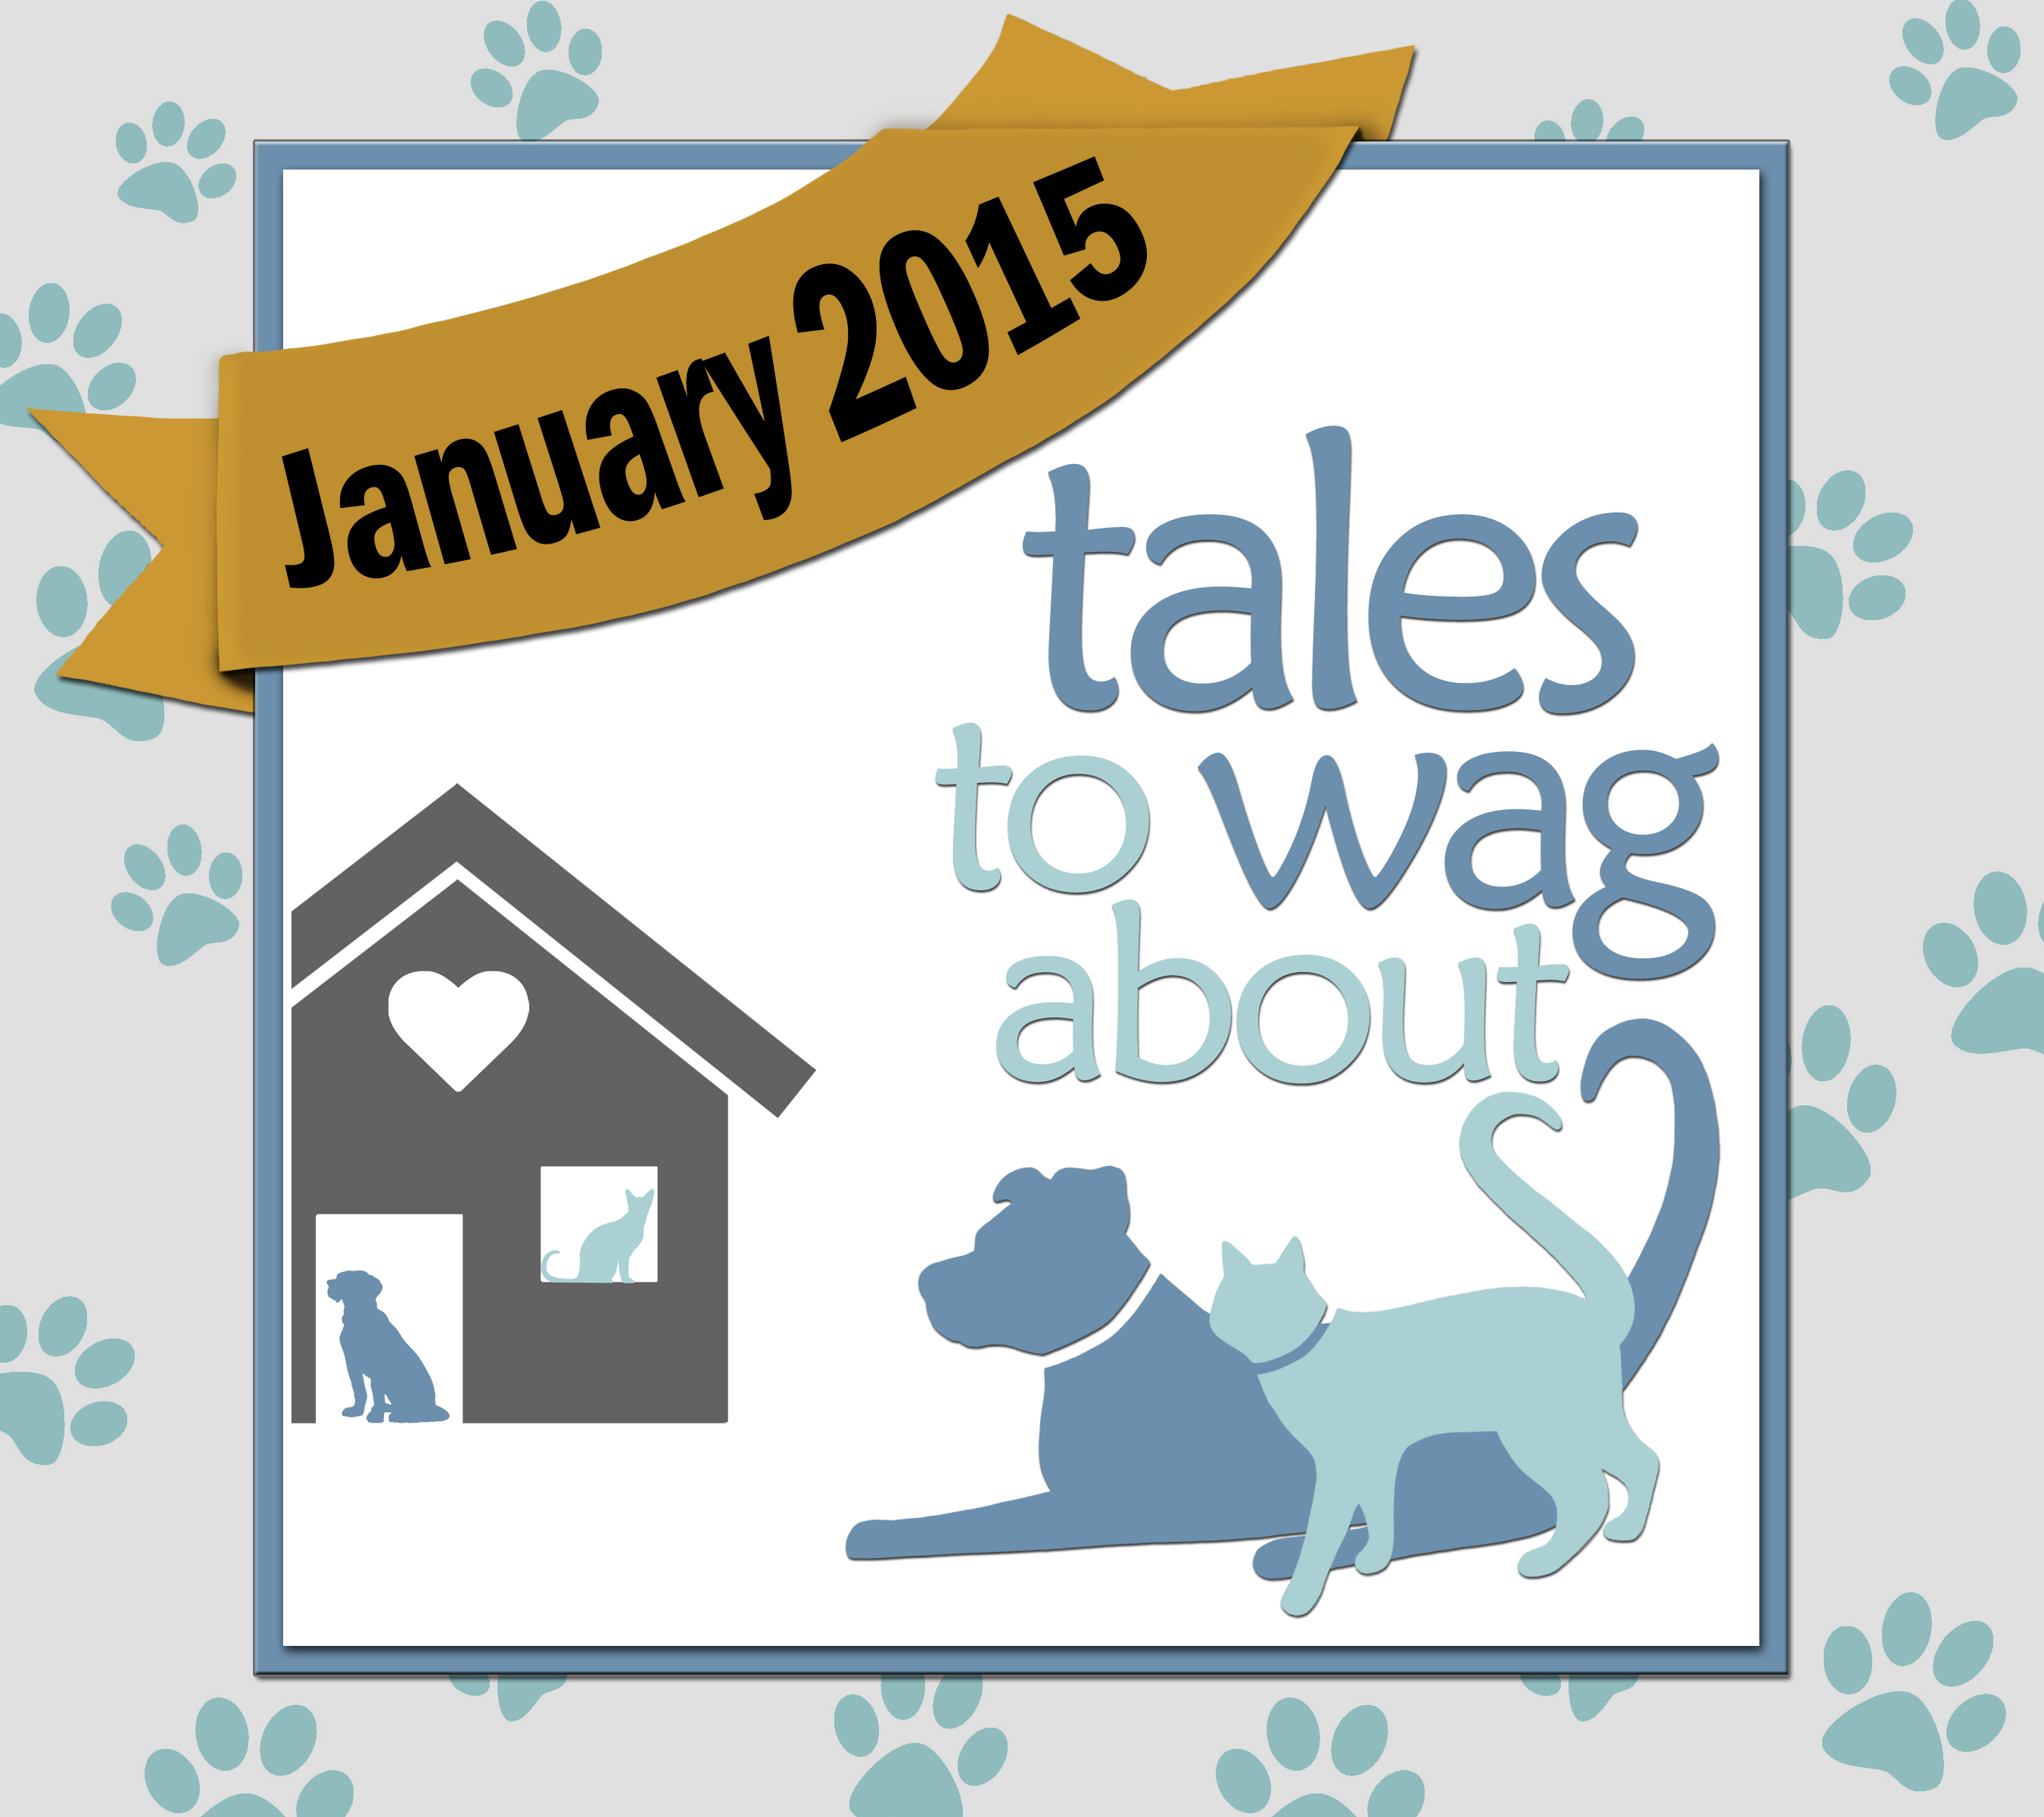 Tales to Wag About - January 2015